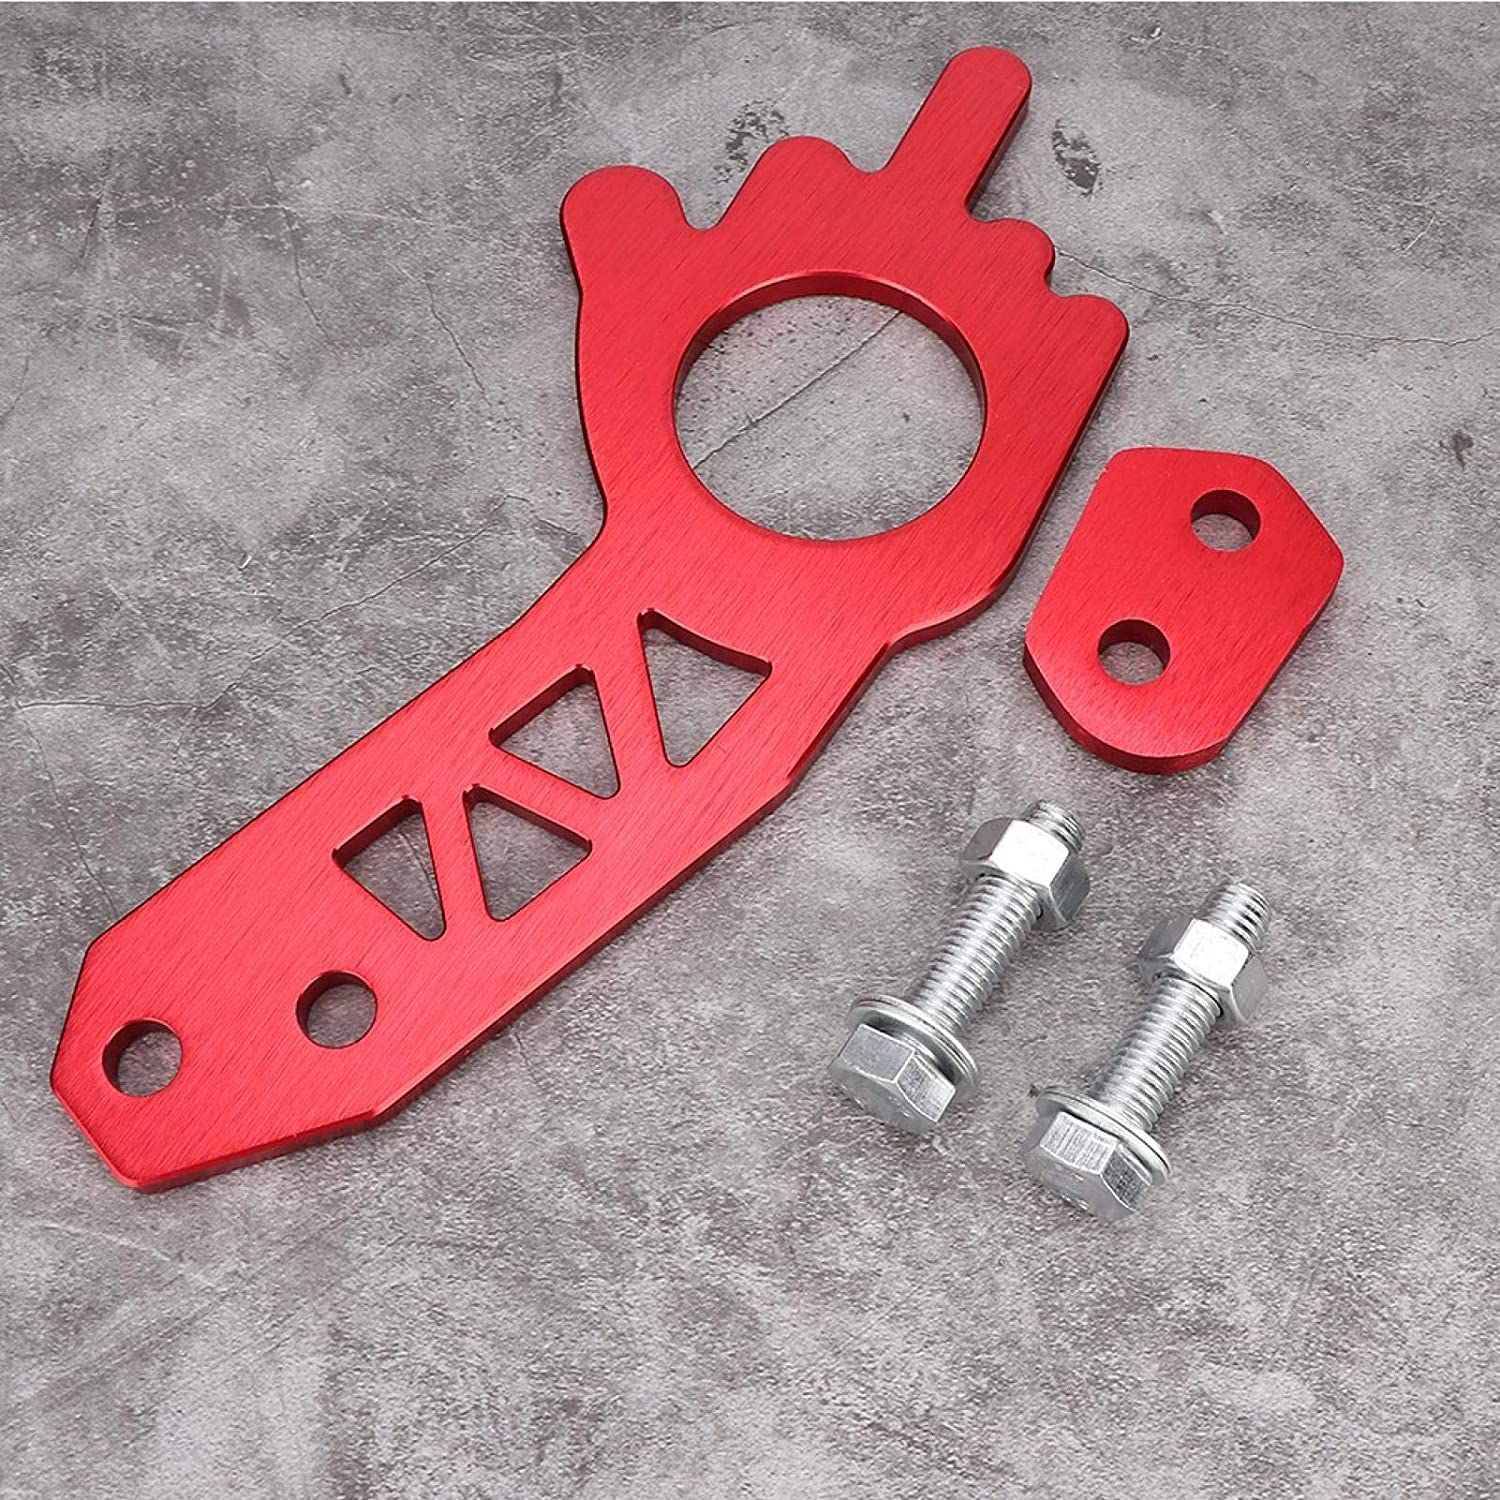 Universal Red Aluminium Alloy Car Truck Front Rear Tow Hook Ring Kit Car Towing Ring